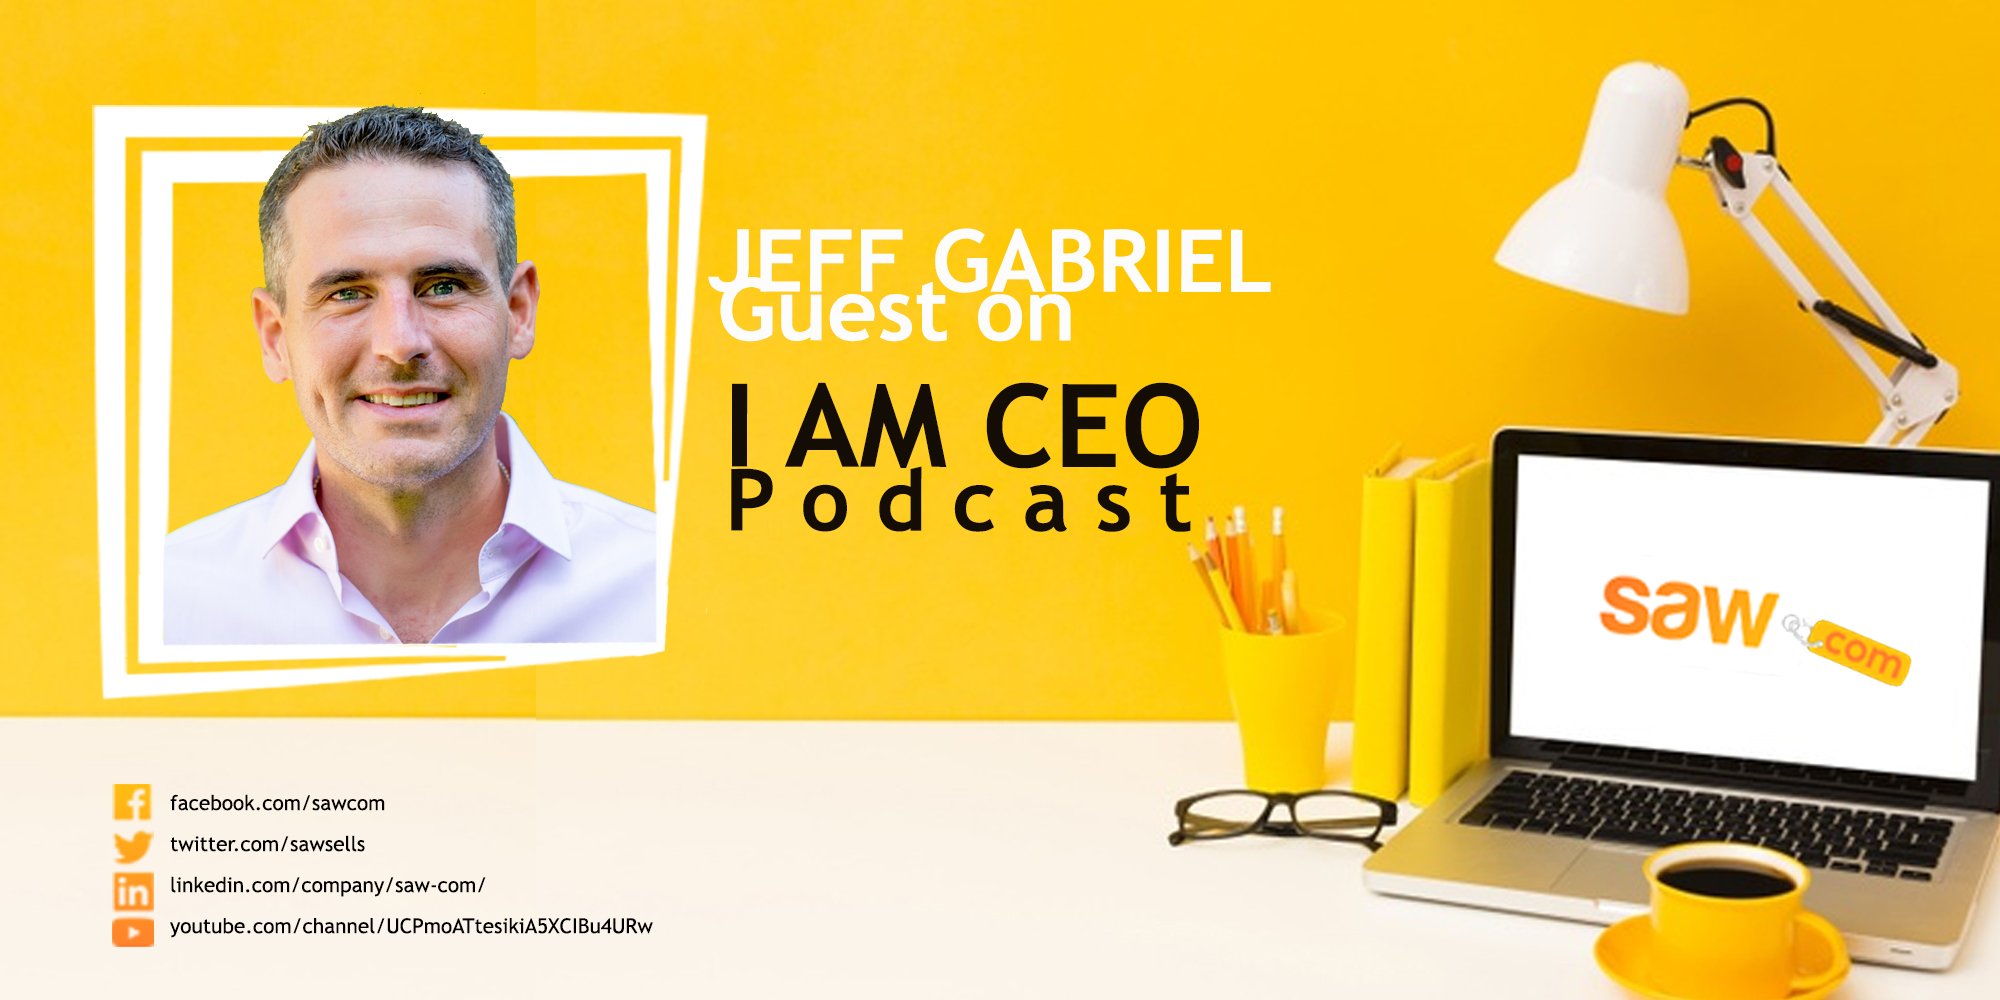 I AM CEO INTERVIEW – JEFFREY GABRIEL